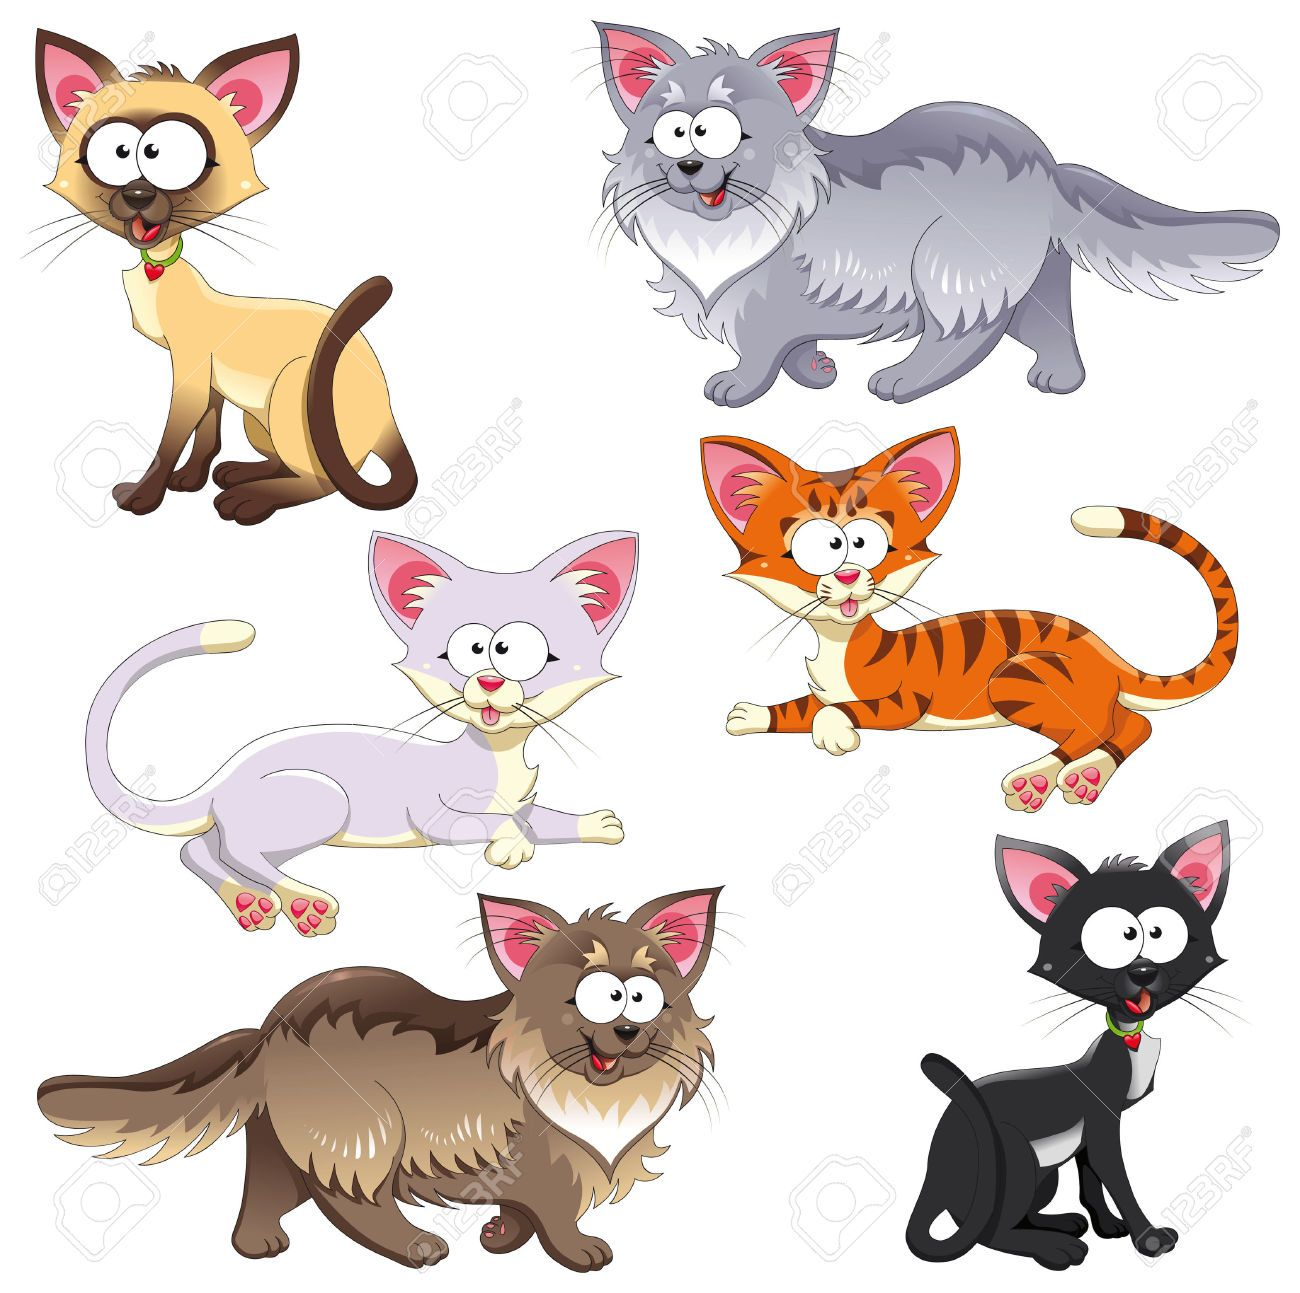 cats characters - Google Search